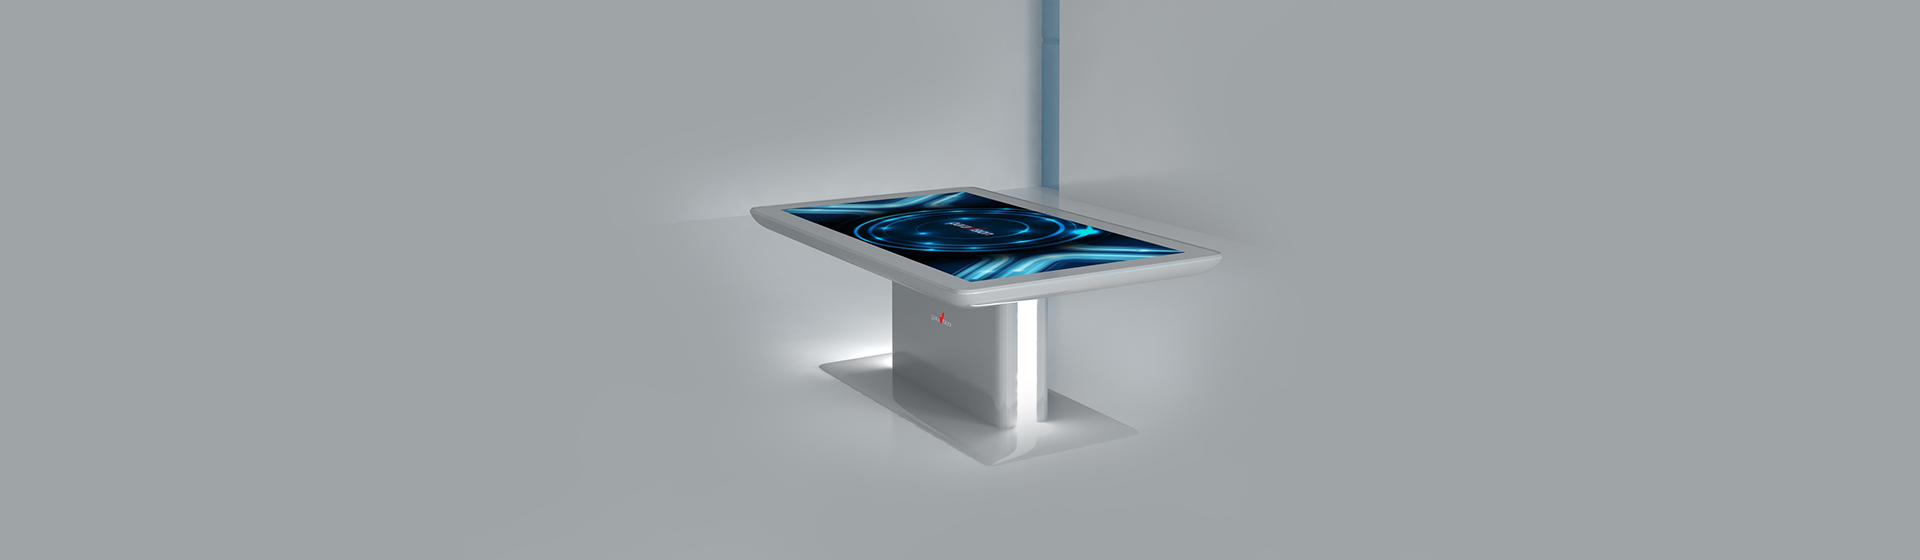 multitouch table 103